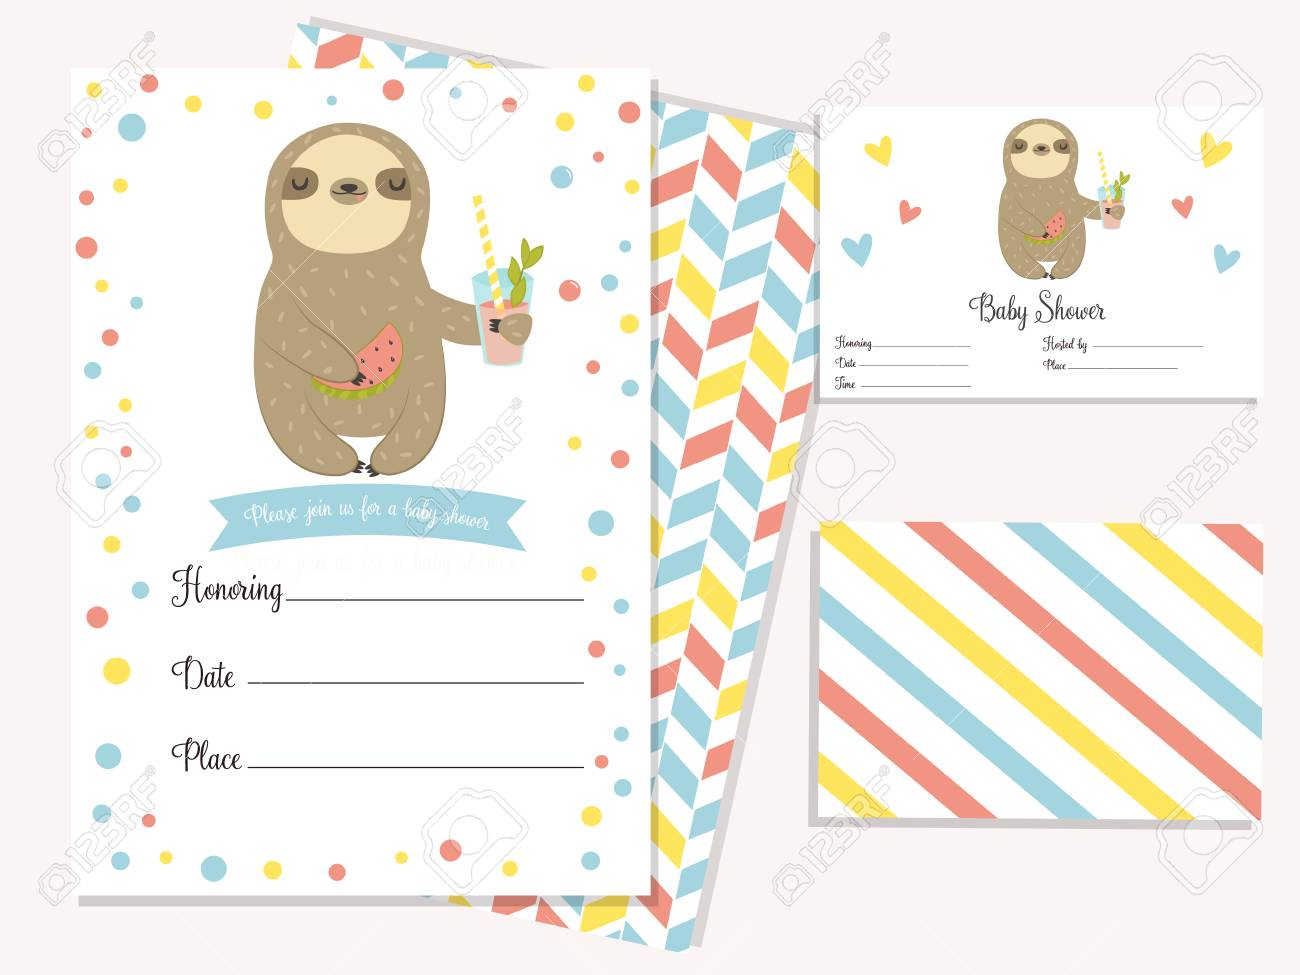 baby shower invitation card with cute sloth template birthday